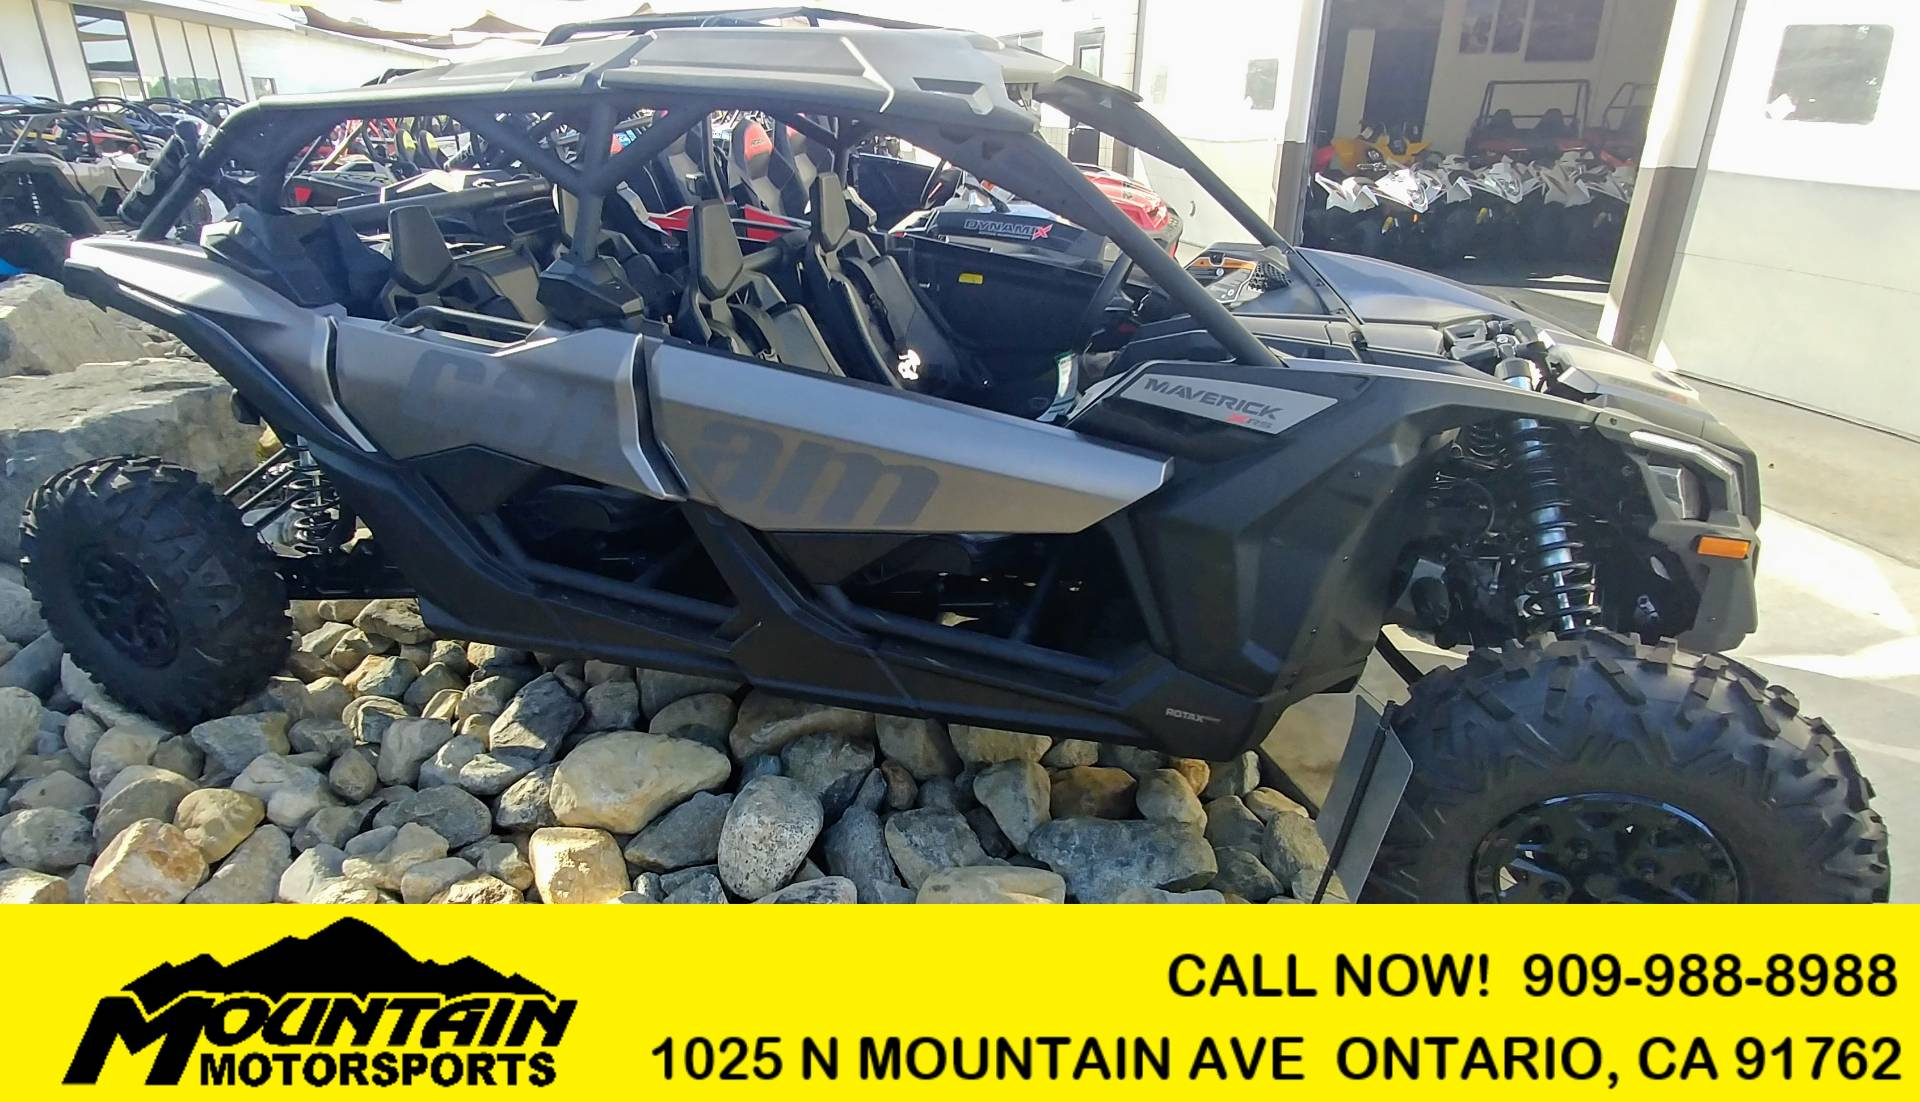 2019 Can-Am Maverick X3 Max X rs Turbo R for sale 5752